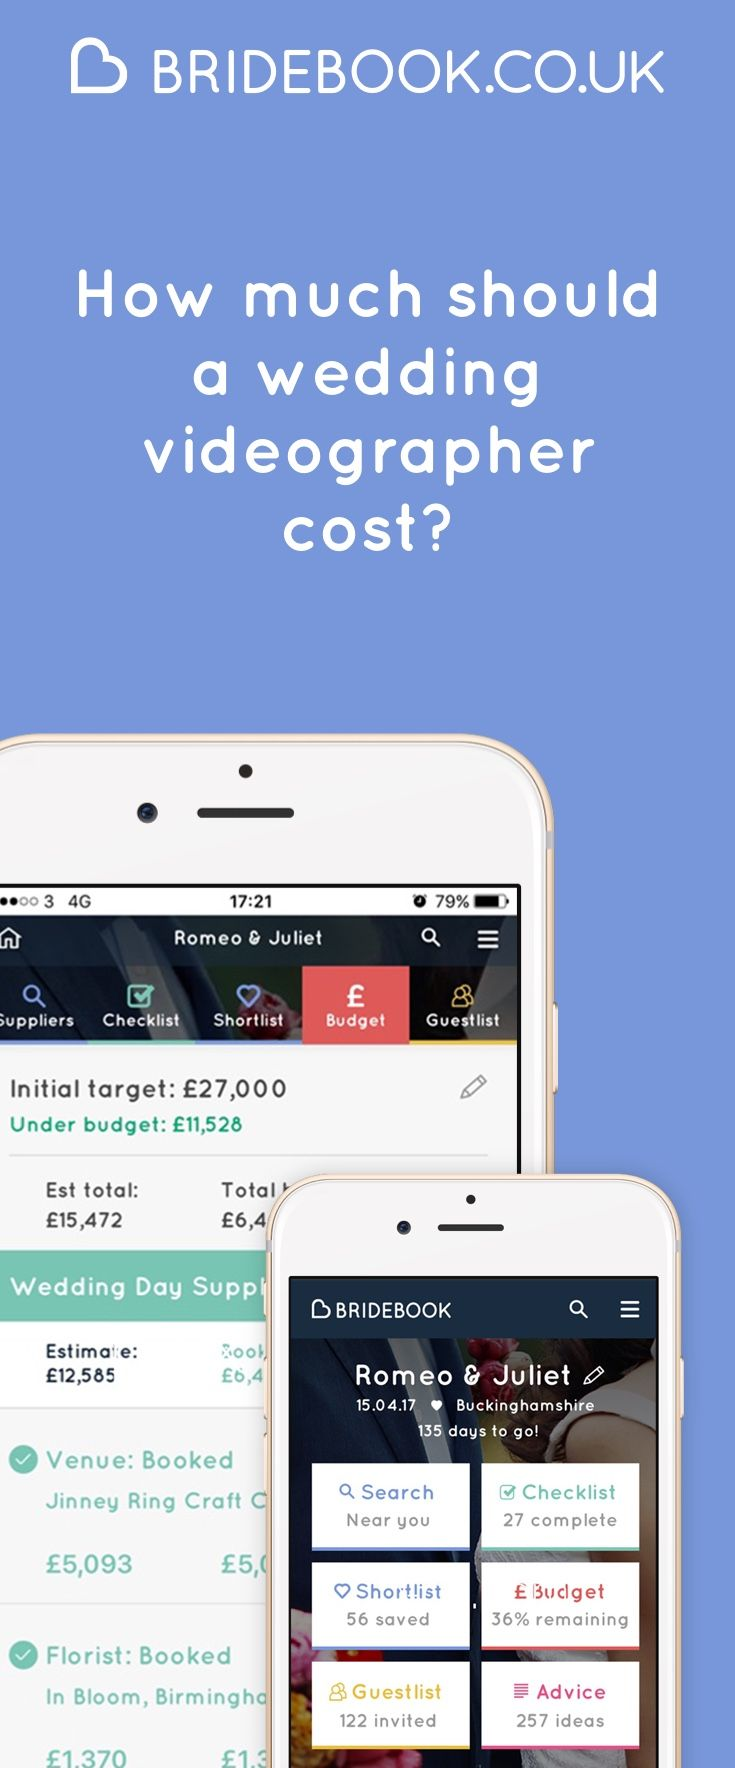 sign up for free to start managing your budget and tracking your